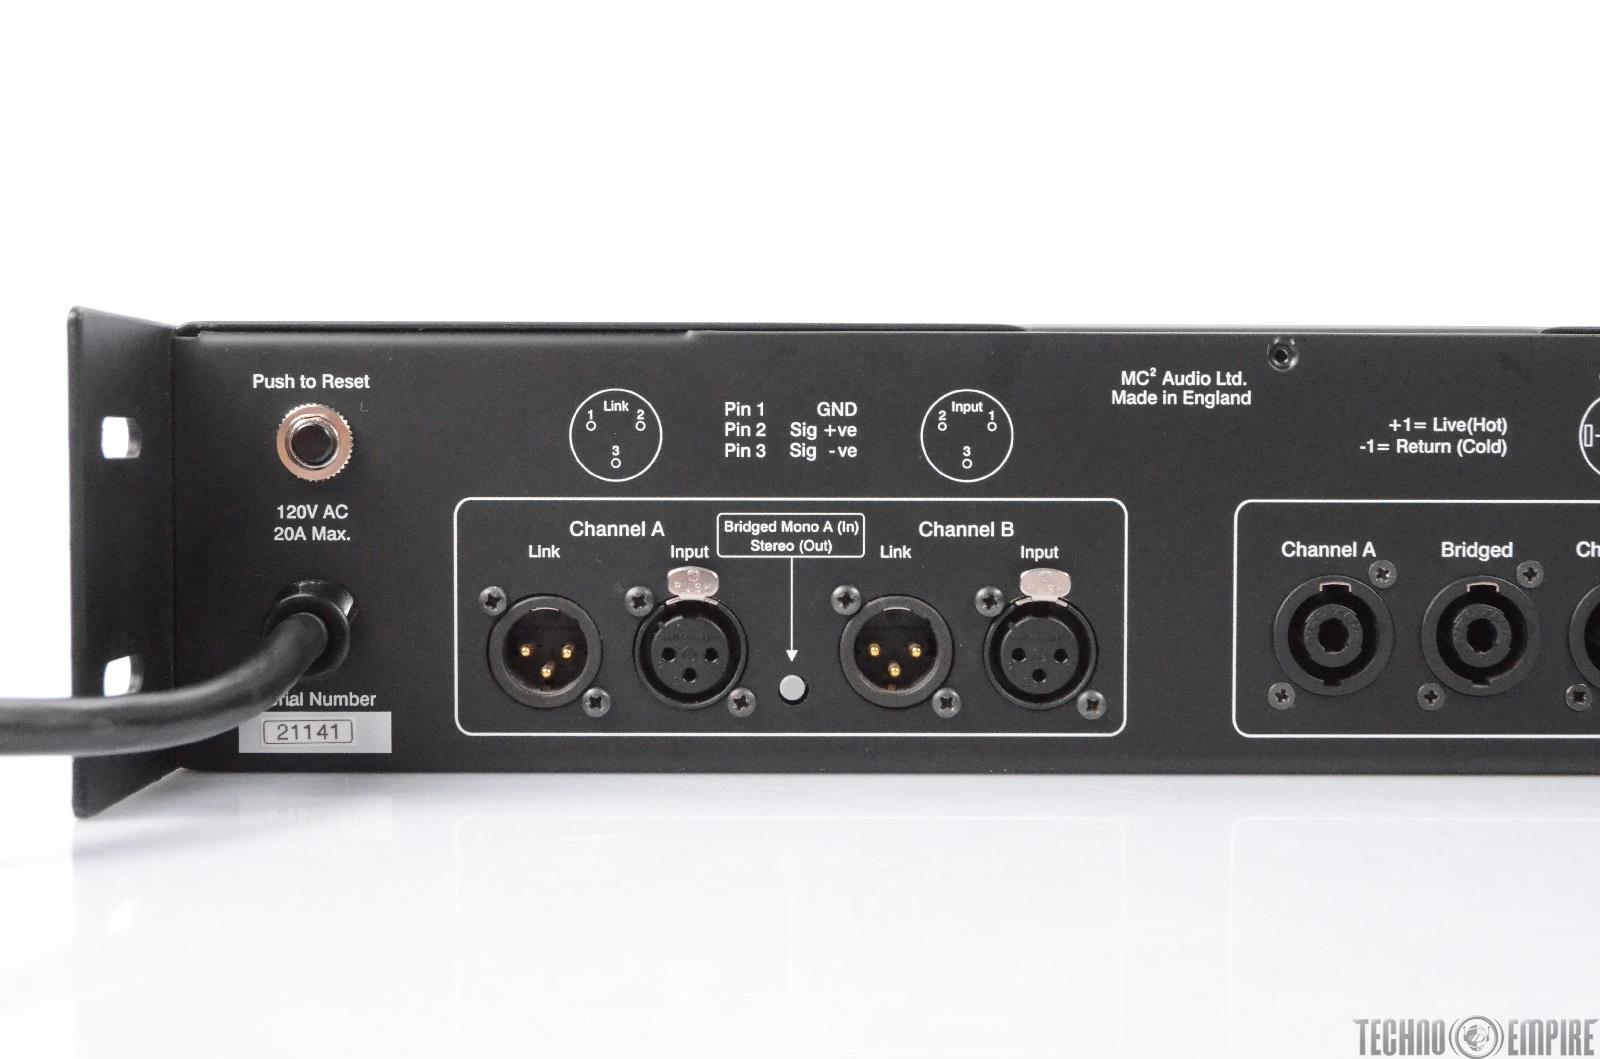 2 channel stereo amplifier 30 amp disconnect wiring diagram mc2 audio quested ap 500 300 watt power